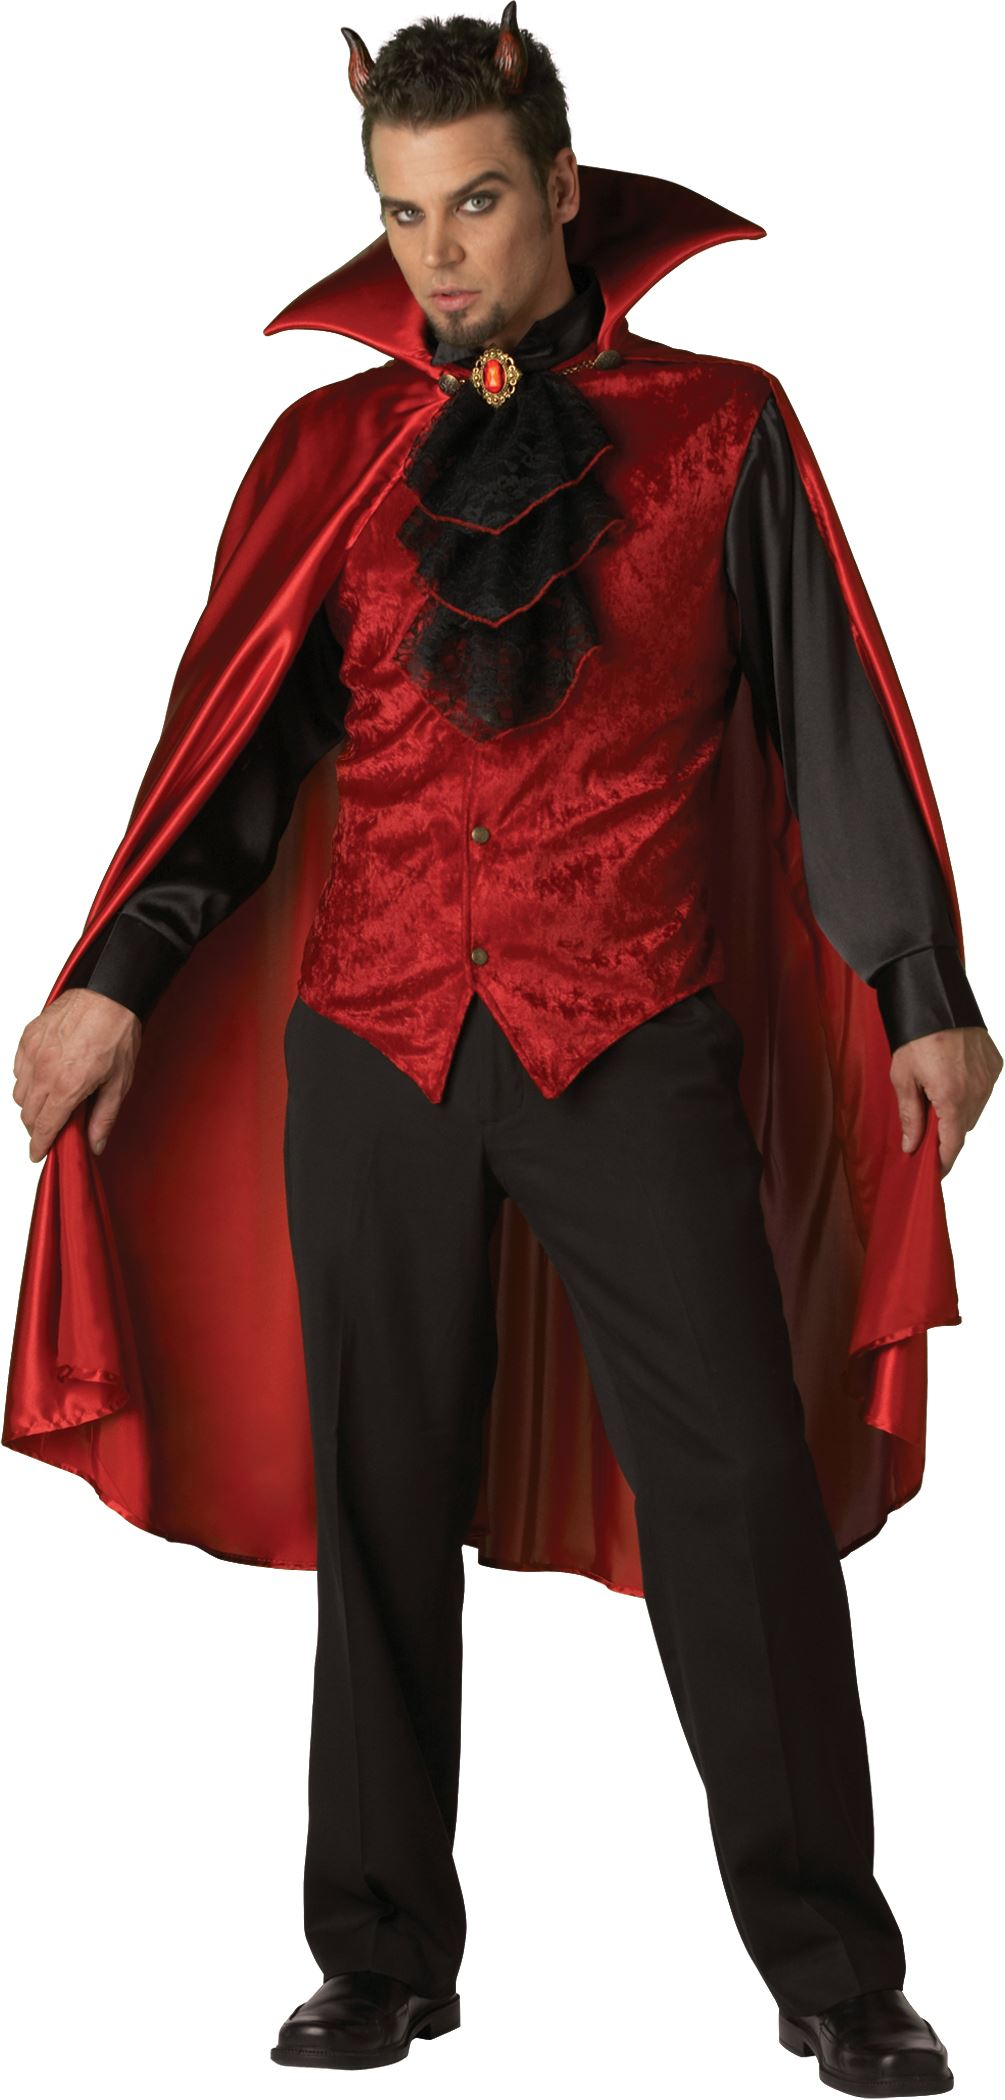 Shop for plus size Halloween costumes at the lowest prices. Find plus size costumes for men and women, funny and sexy plus size costumes, and more.